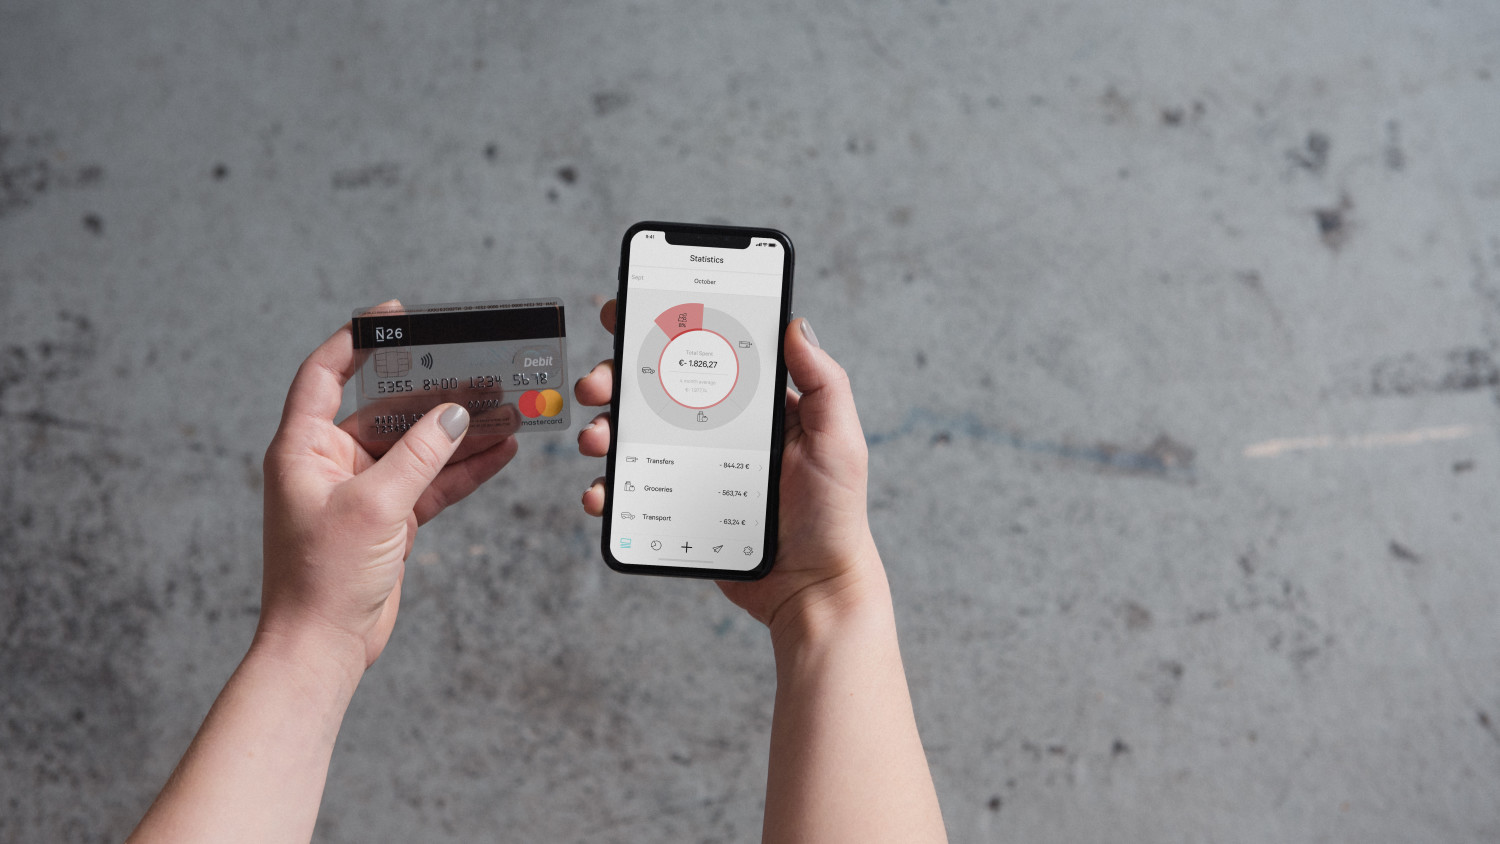 N26 Press Image showing a person sitting while holding the N26 Debitcard Mastercard and her phone